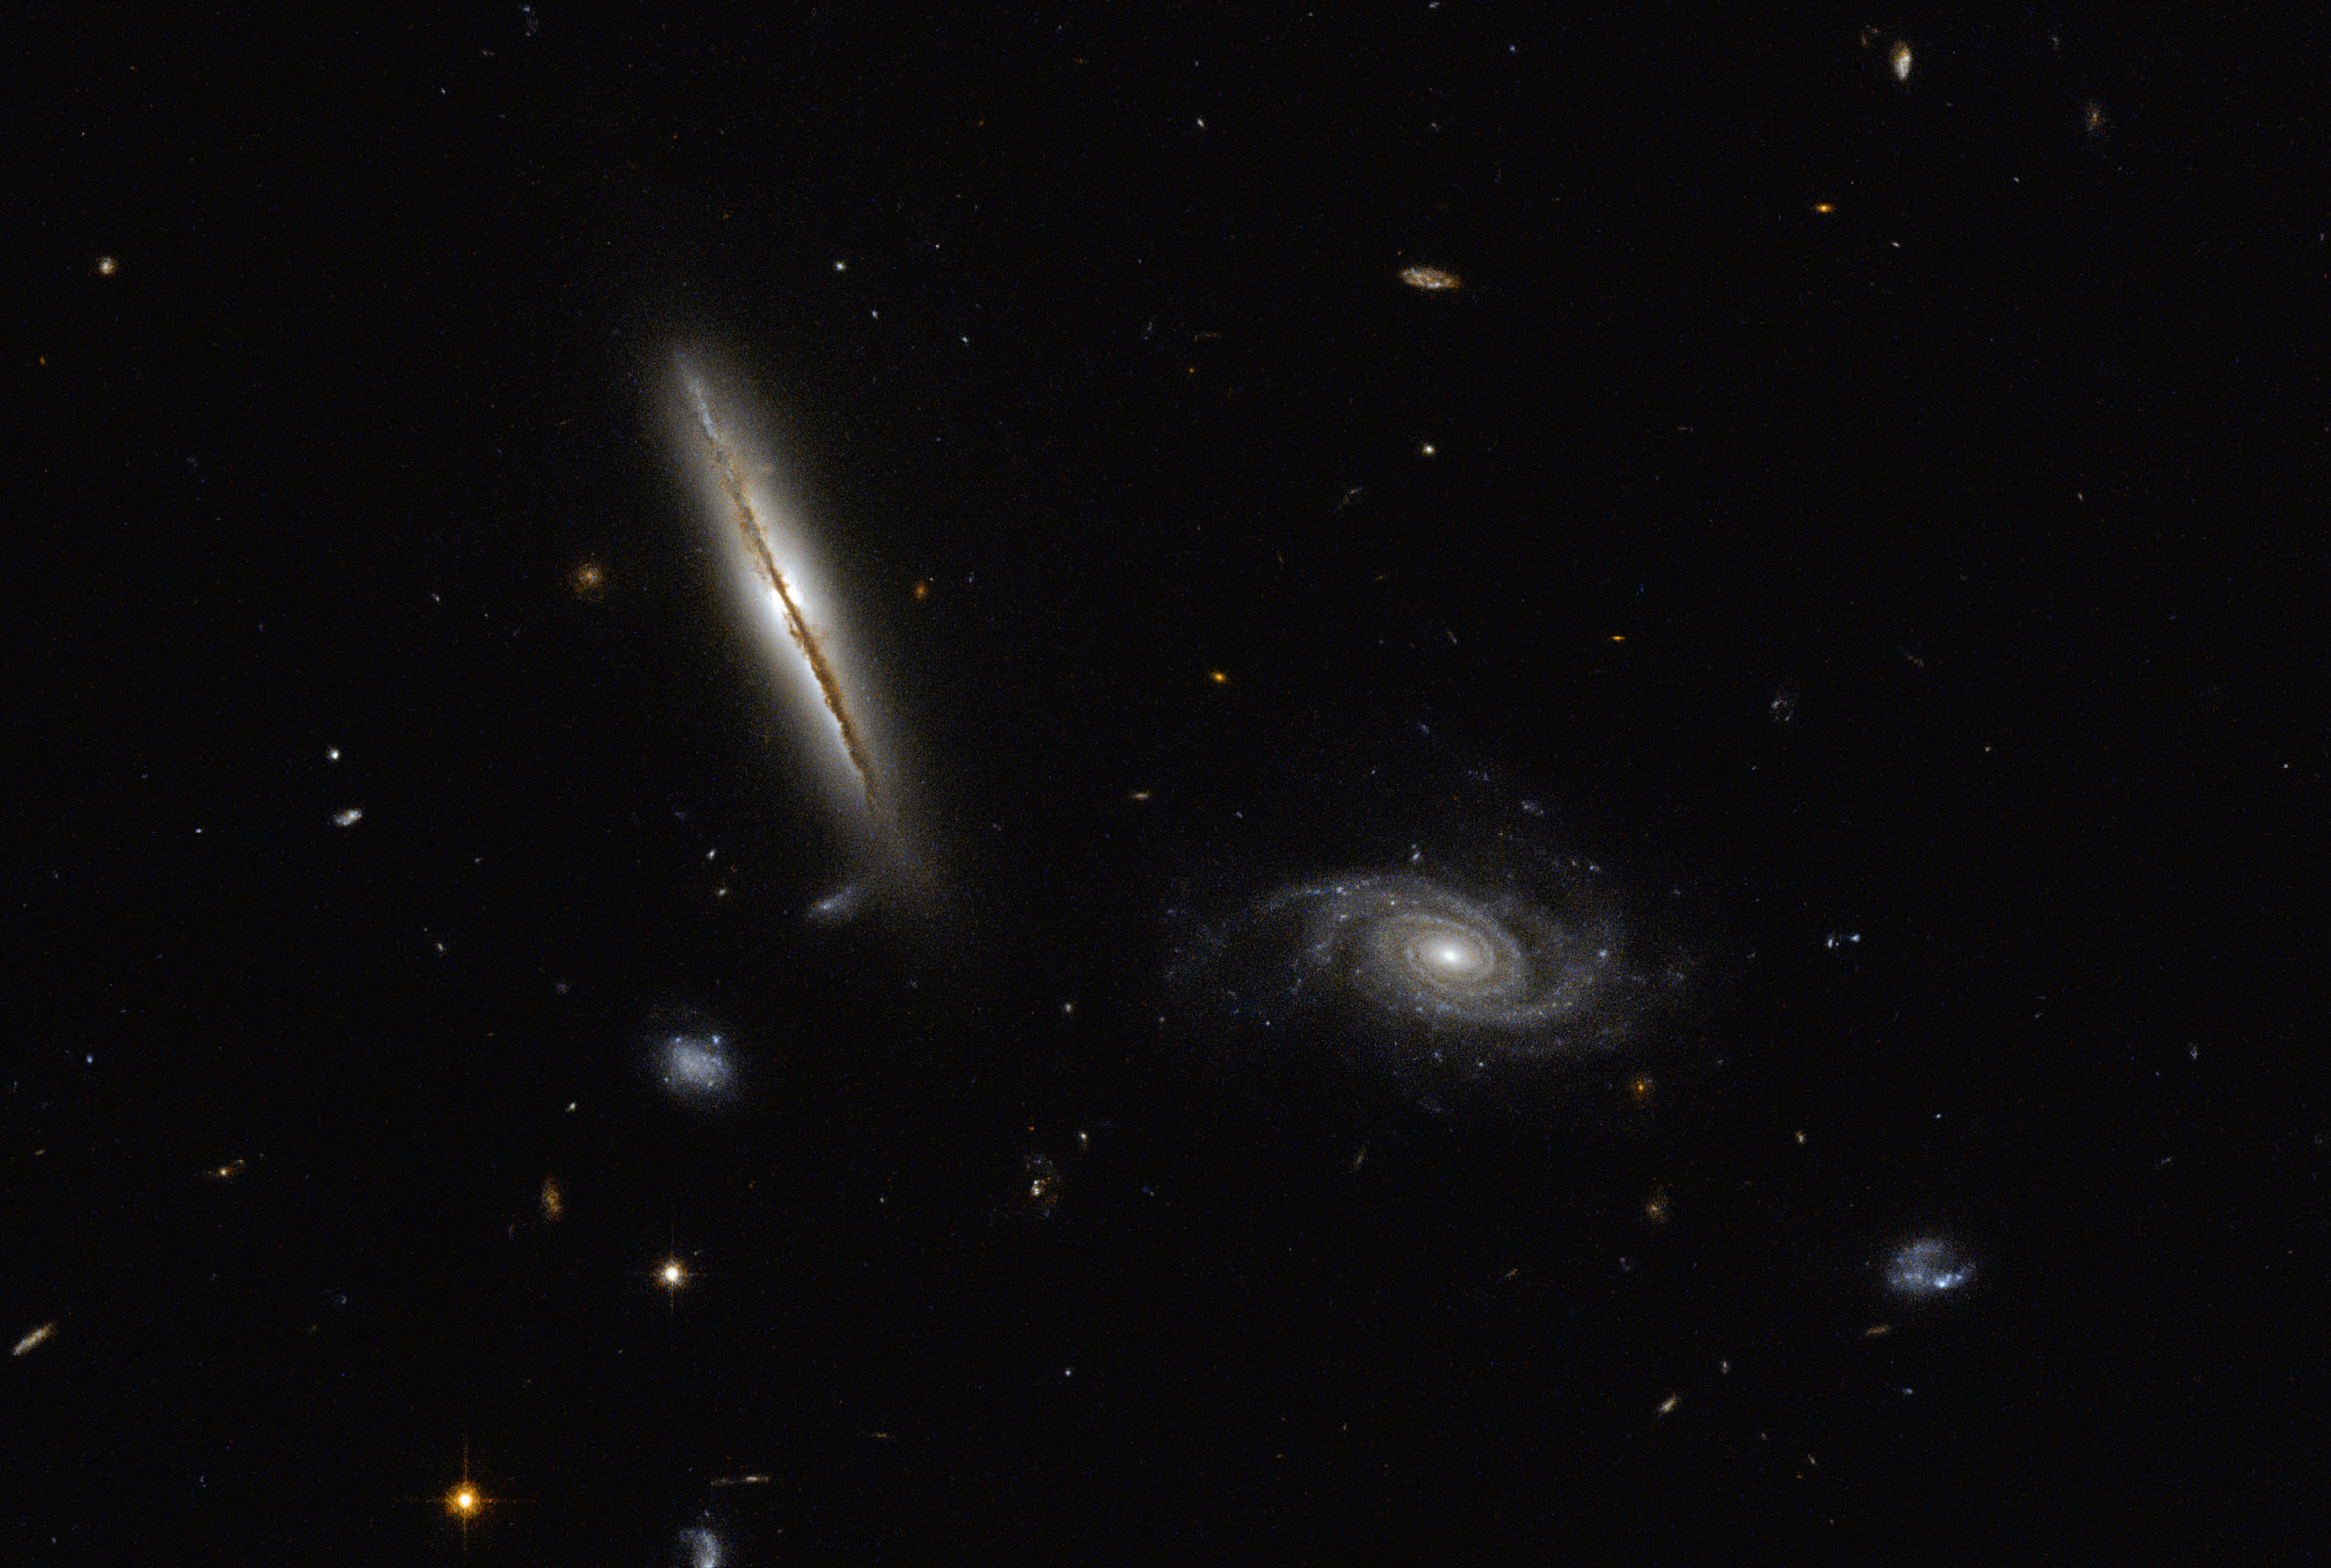 hubble telescope galaxies high def - photo #41